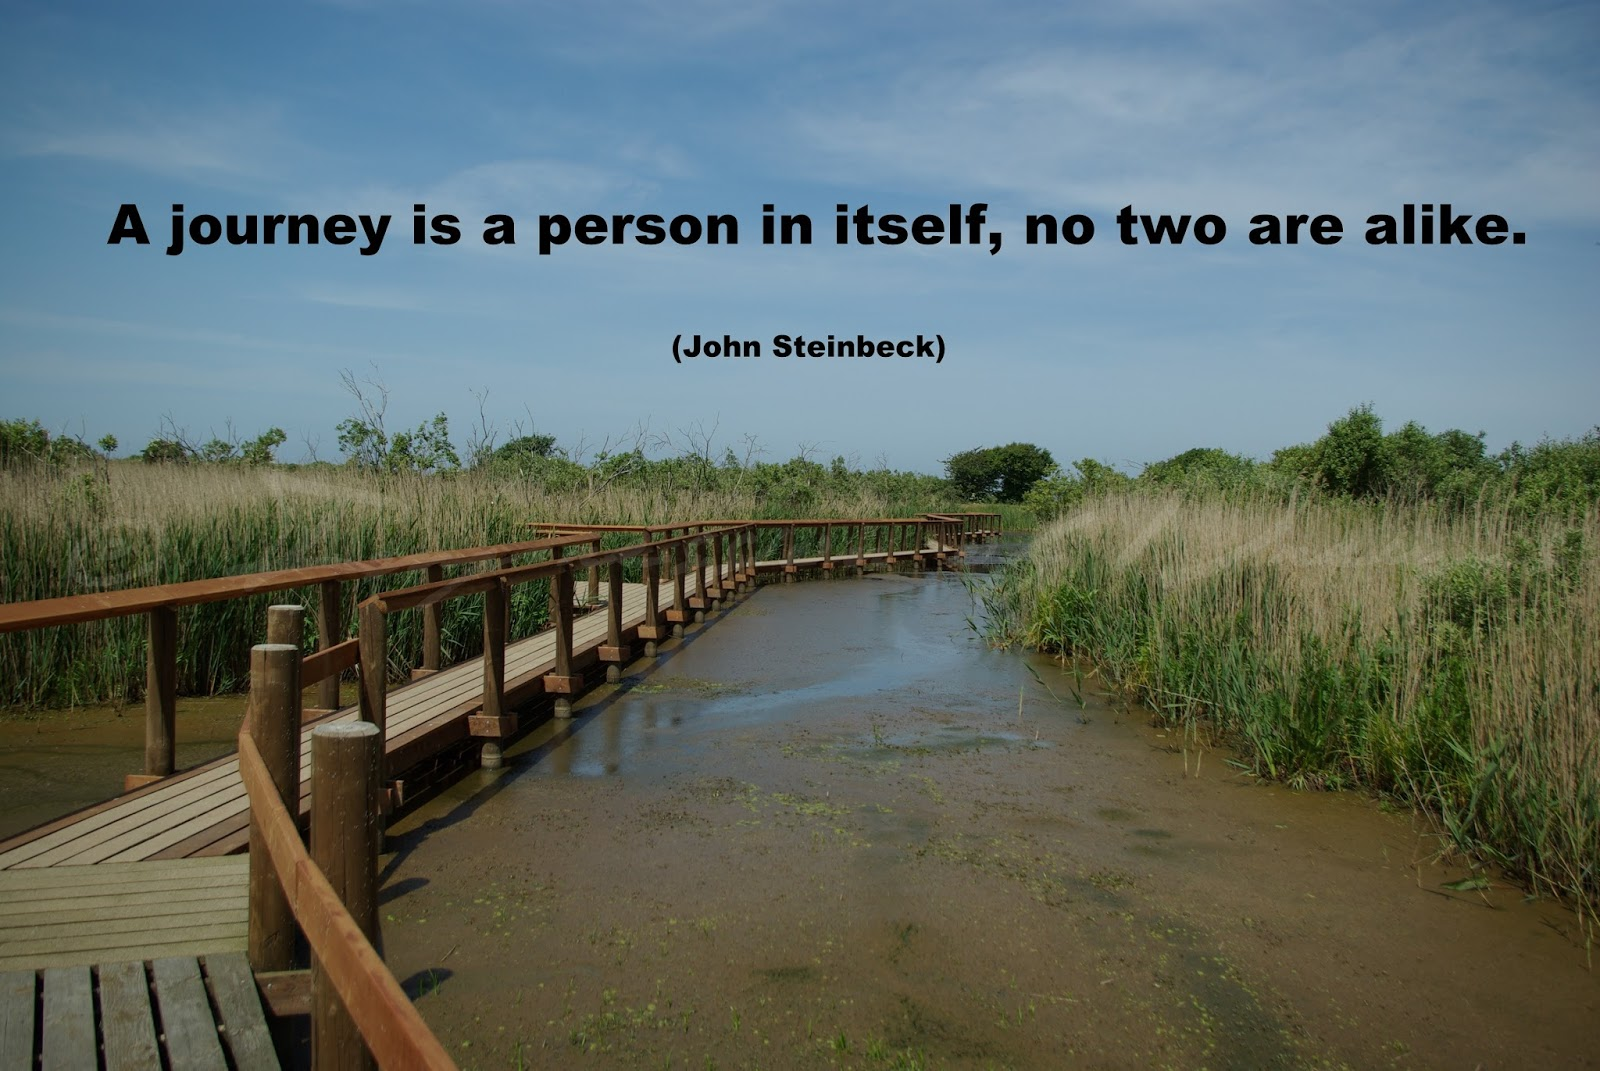 A journey is a person in itself, no two are alike